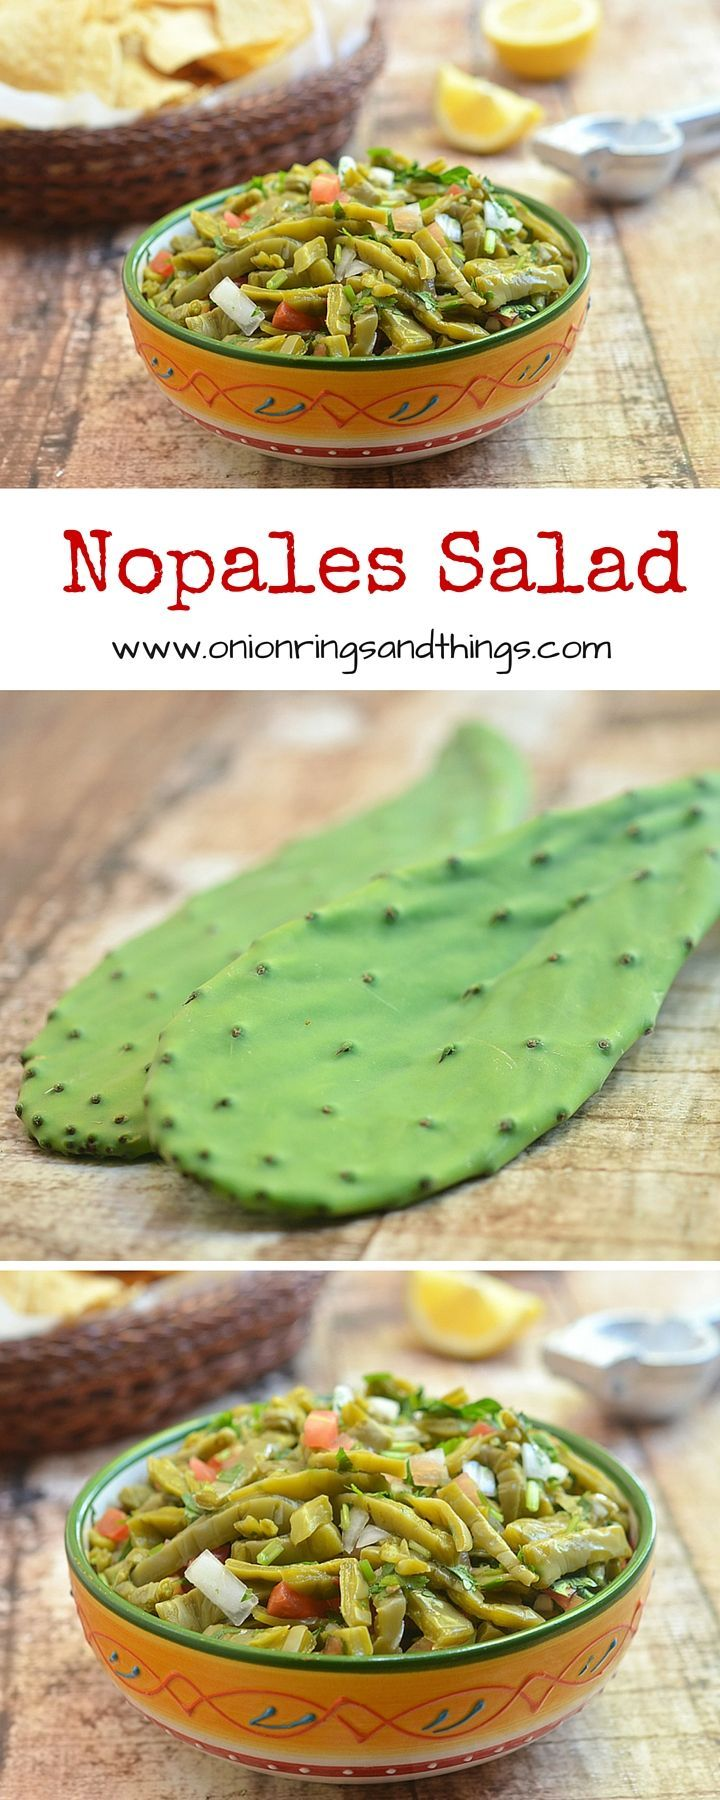 Nopales Salad is a vibrant, nutrient packed salad made with prickly pear cactus, onions, tomatoes, lime and chili peppers